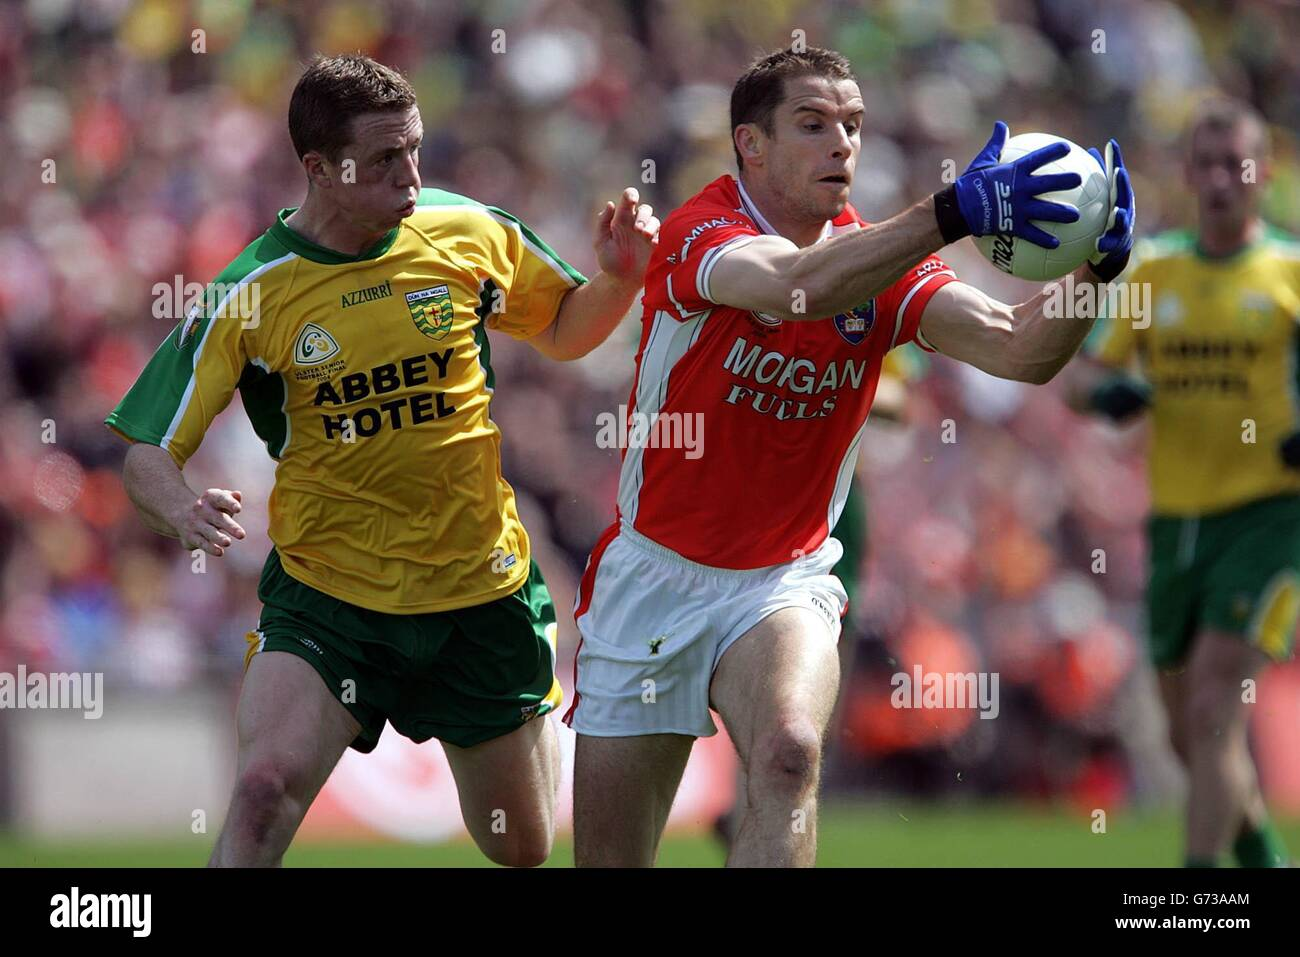 Armagh v Donegal - Stock Image